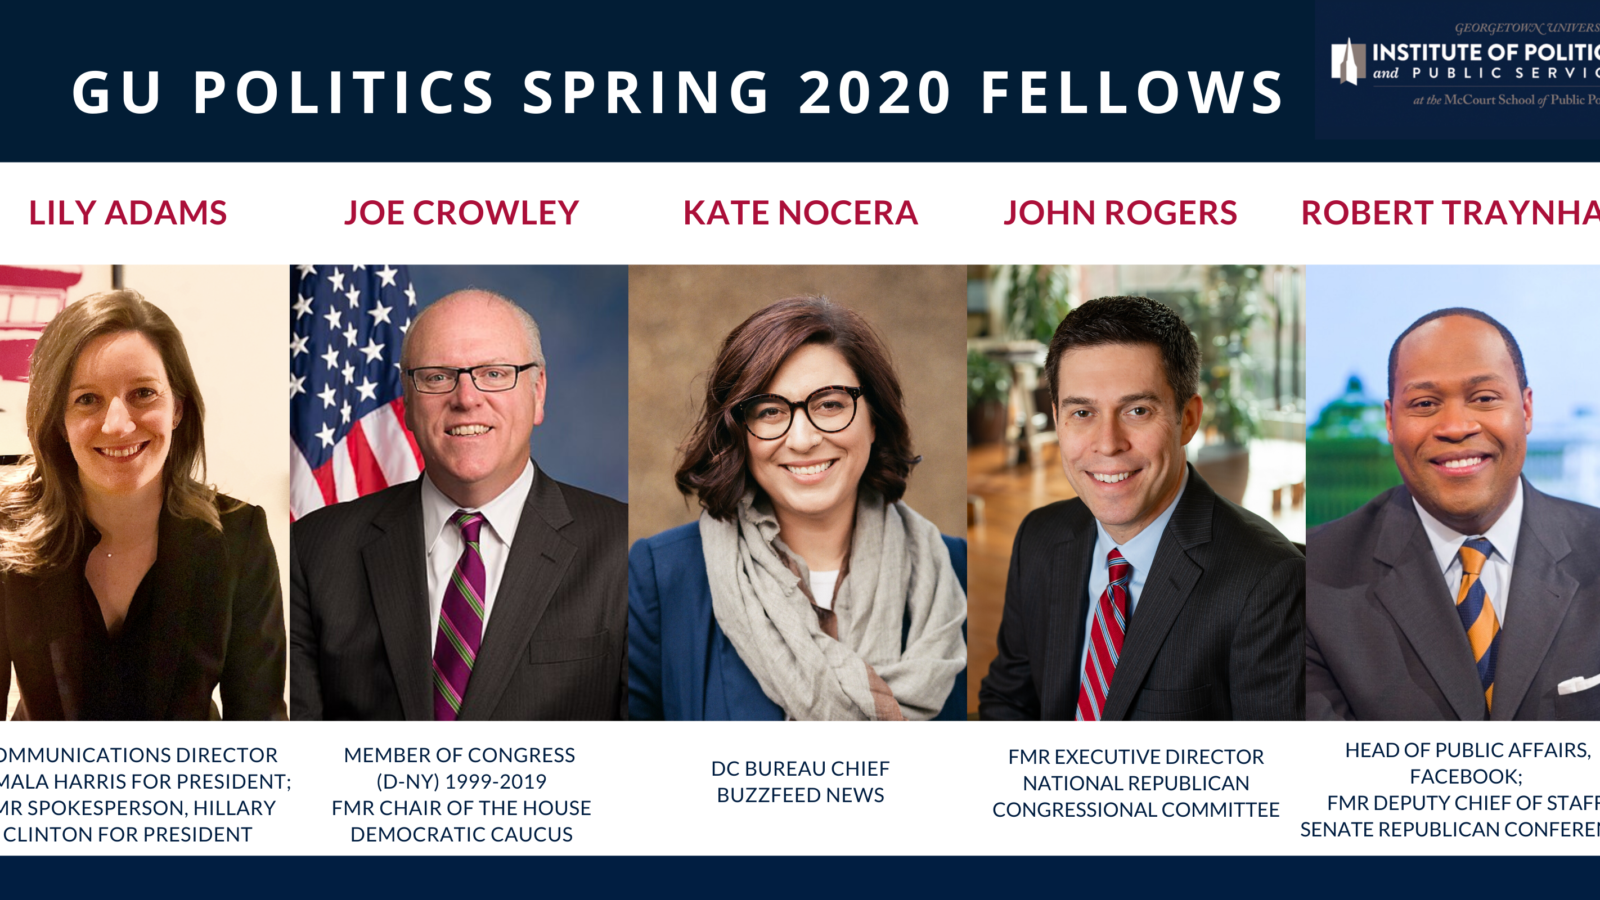 GU Politics will welcome Lily Adams, Joe Crowley, Kate Nocera, John Rogers, and Robert Traynham as fellows.